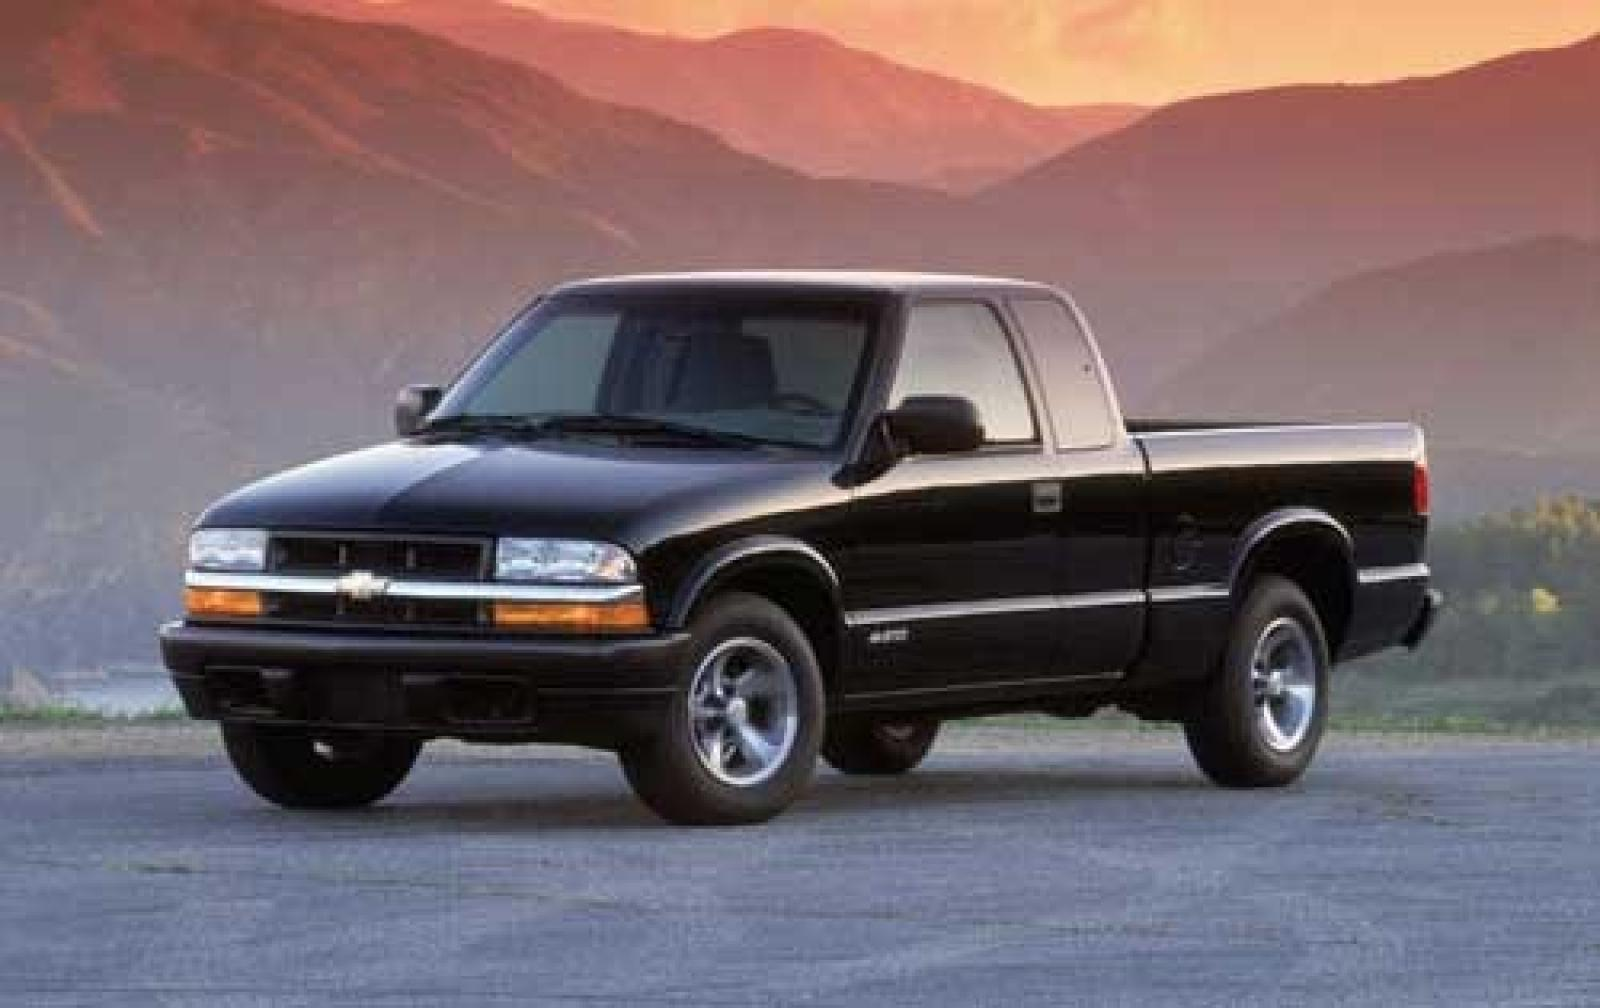 2004 chevrolet s 10 information and photos zombiedrive. Black Bedroom Furniture Sets. Home Design Ideas